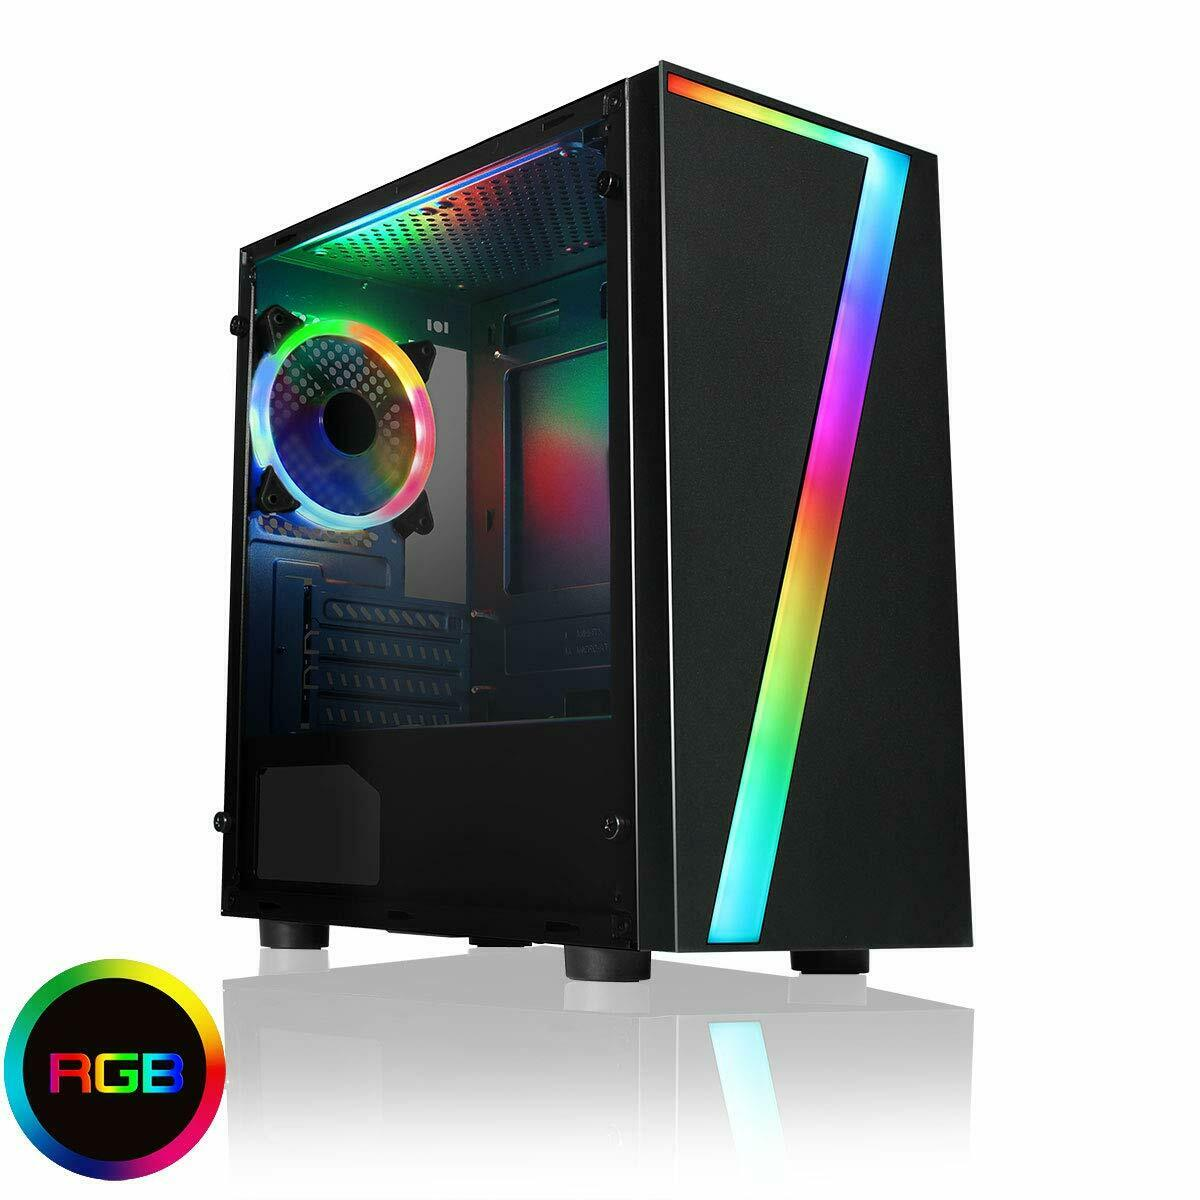 Computer Games - Ultra Fast Computer Gaming PC Tower I7 Quad Core 16GB 1TB HDD & Win 10 WIFI